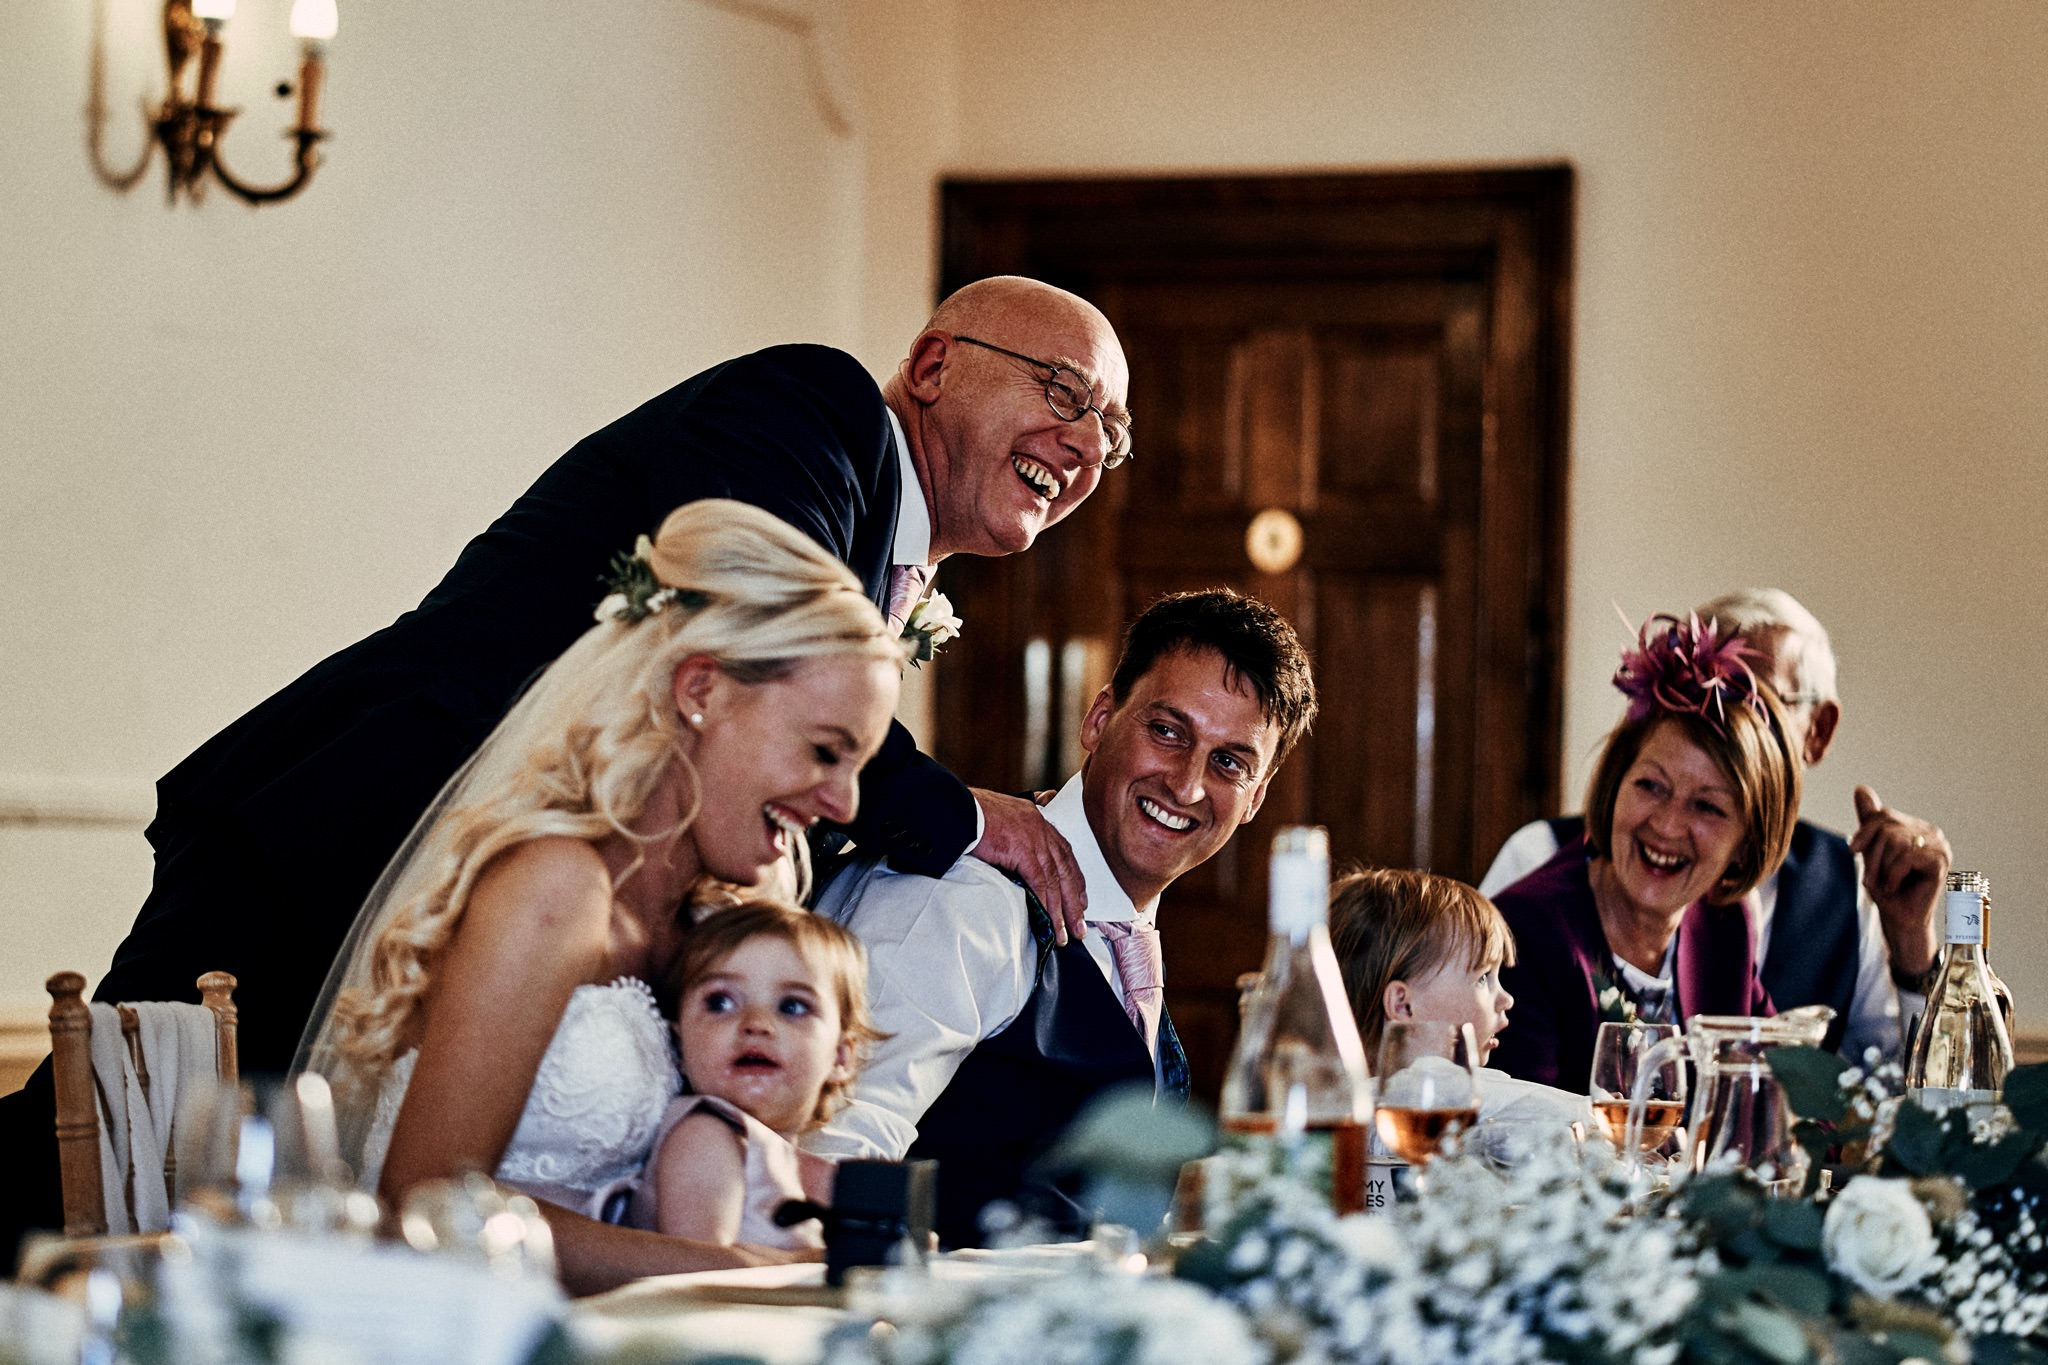 Dad delivers a joke during his speeches during a wedding at Willington Hall Hotel